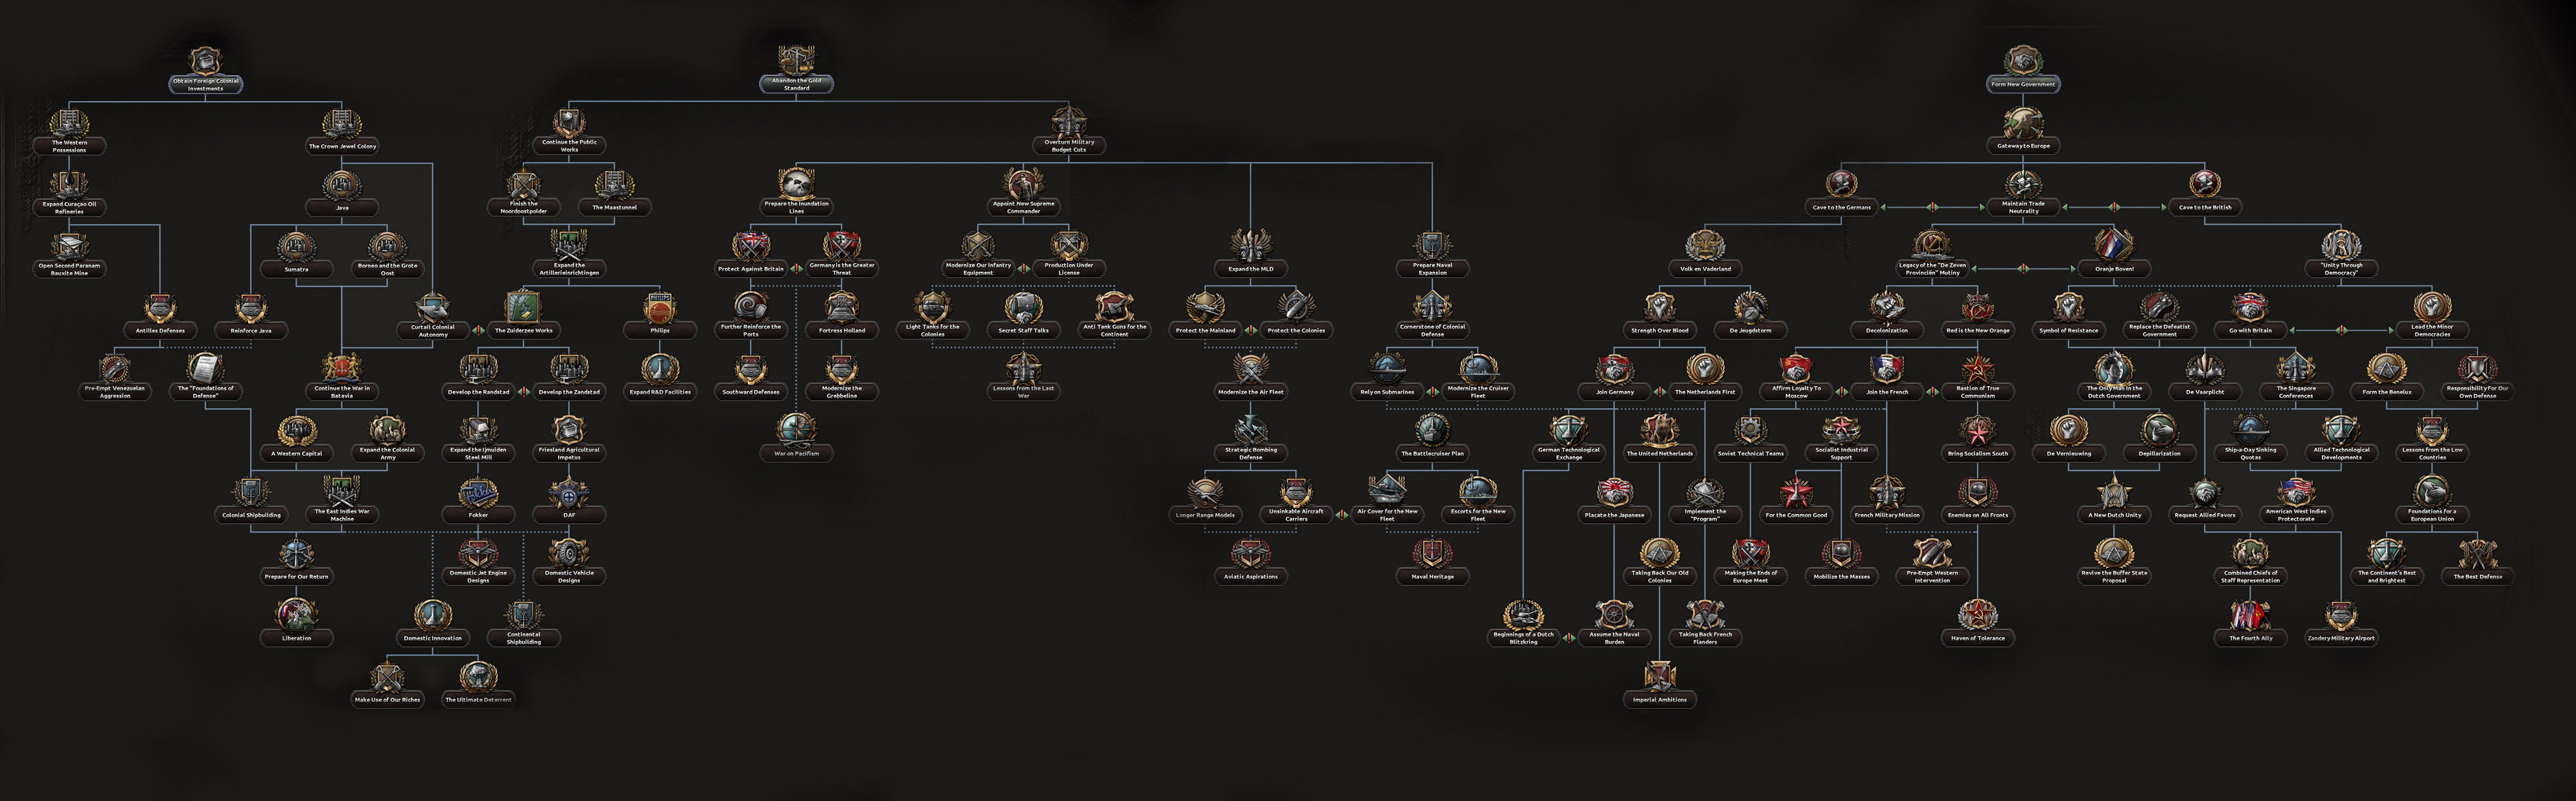 dev diary netherlands_tree.jpg